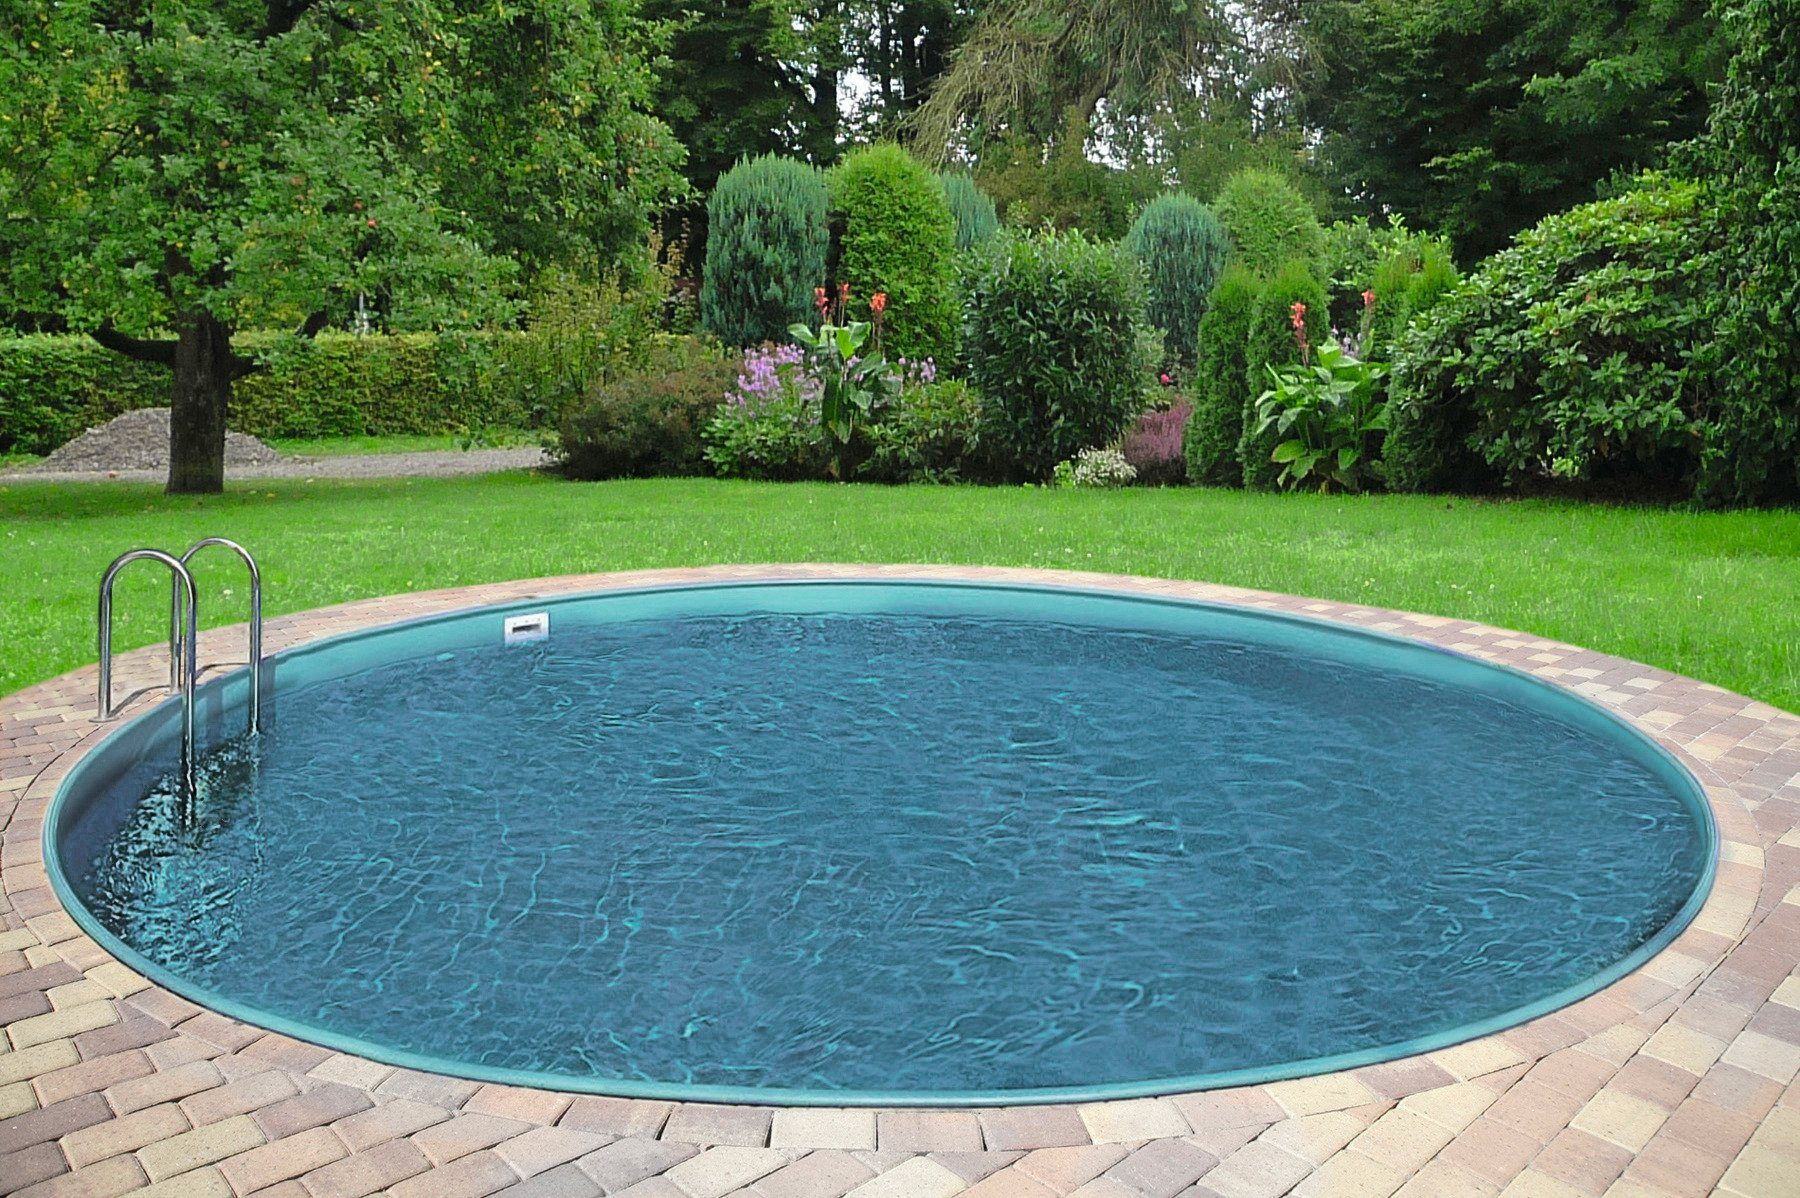 Clear pool rond zwembad premium ibiza« dlg in afmetingen